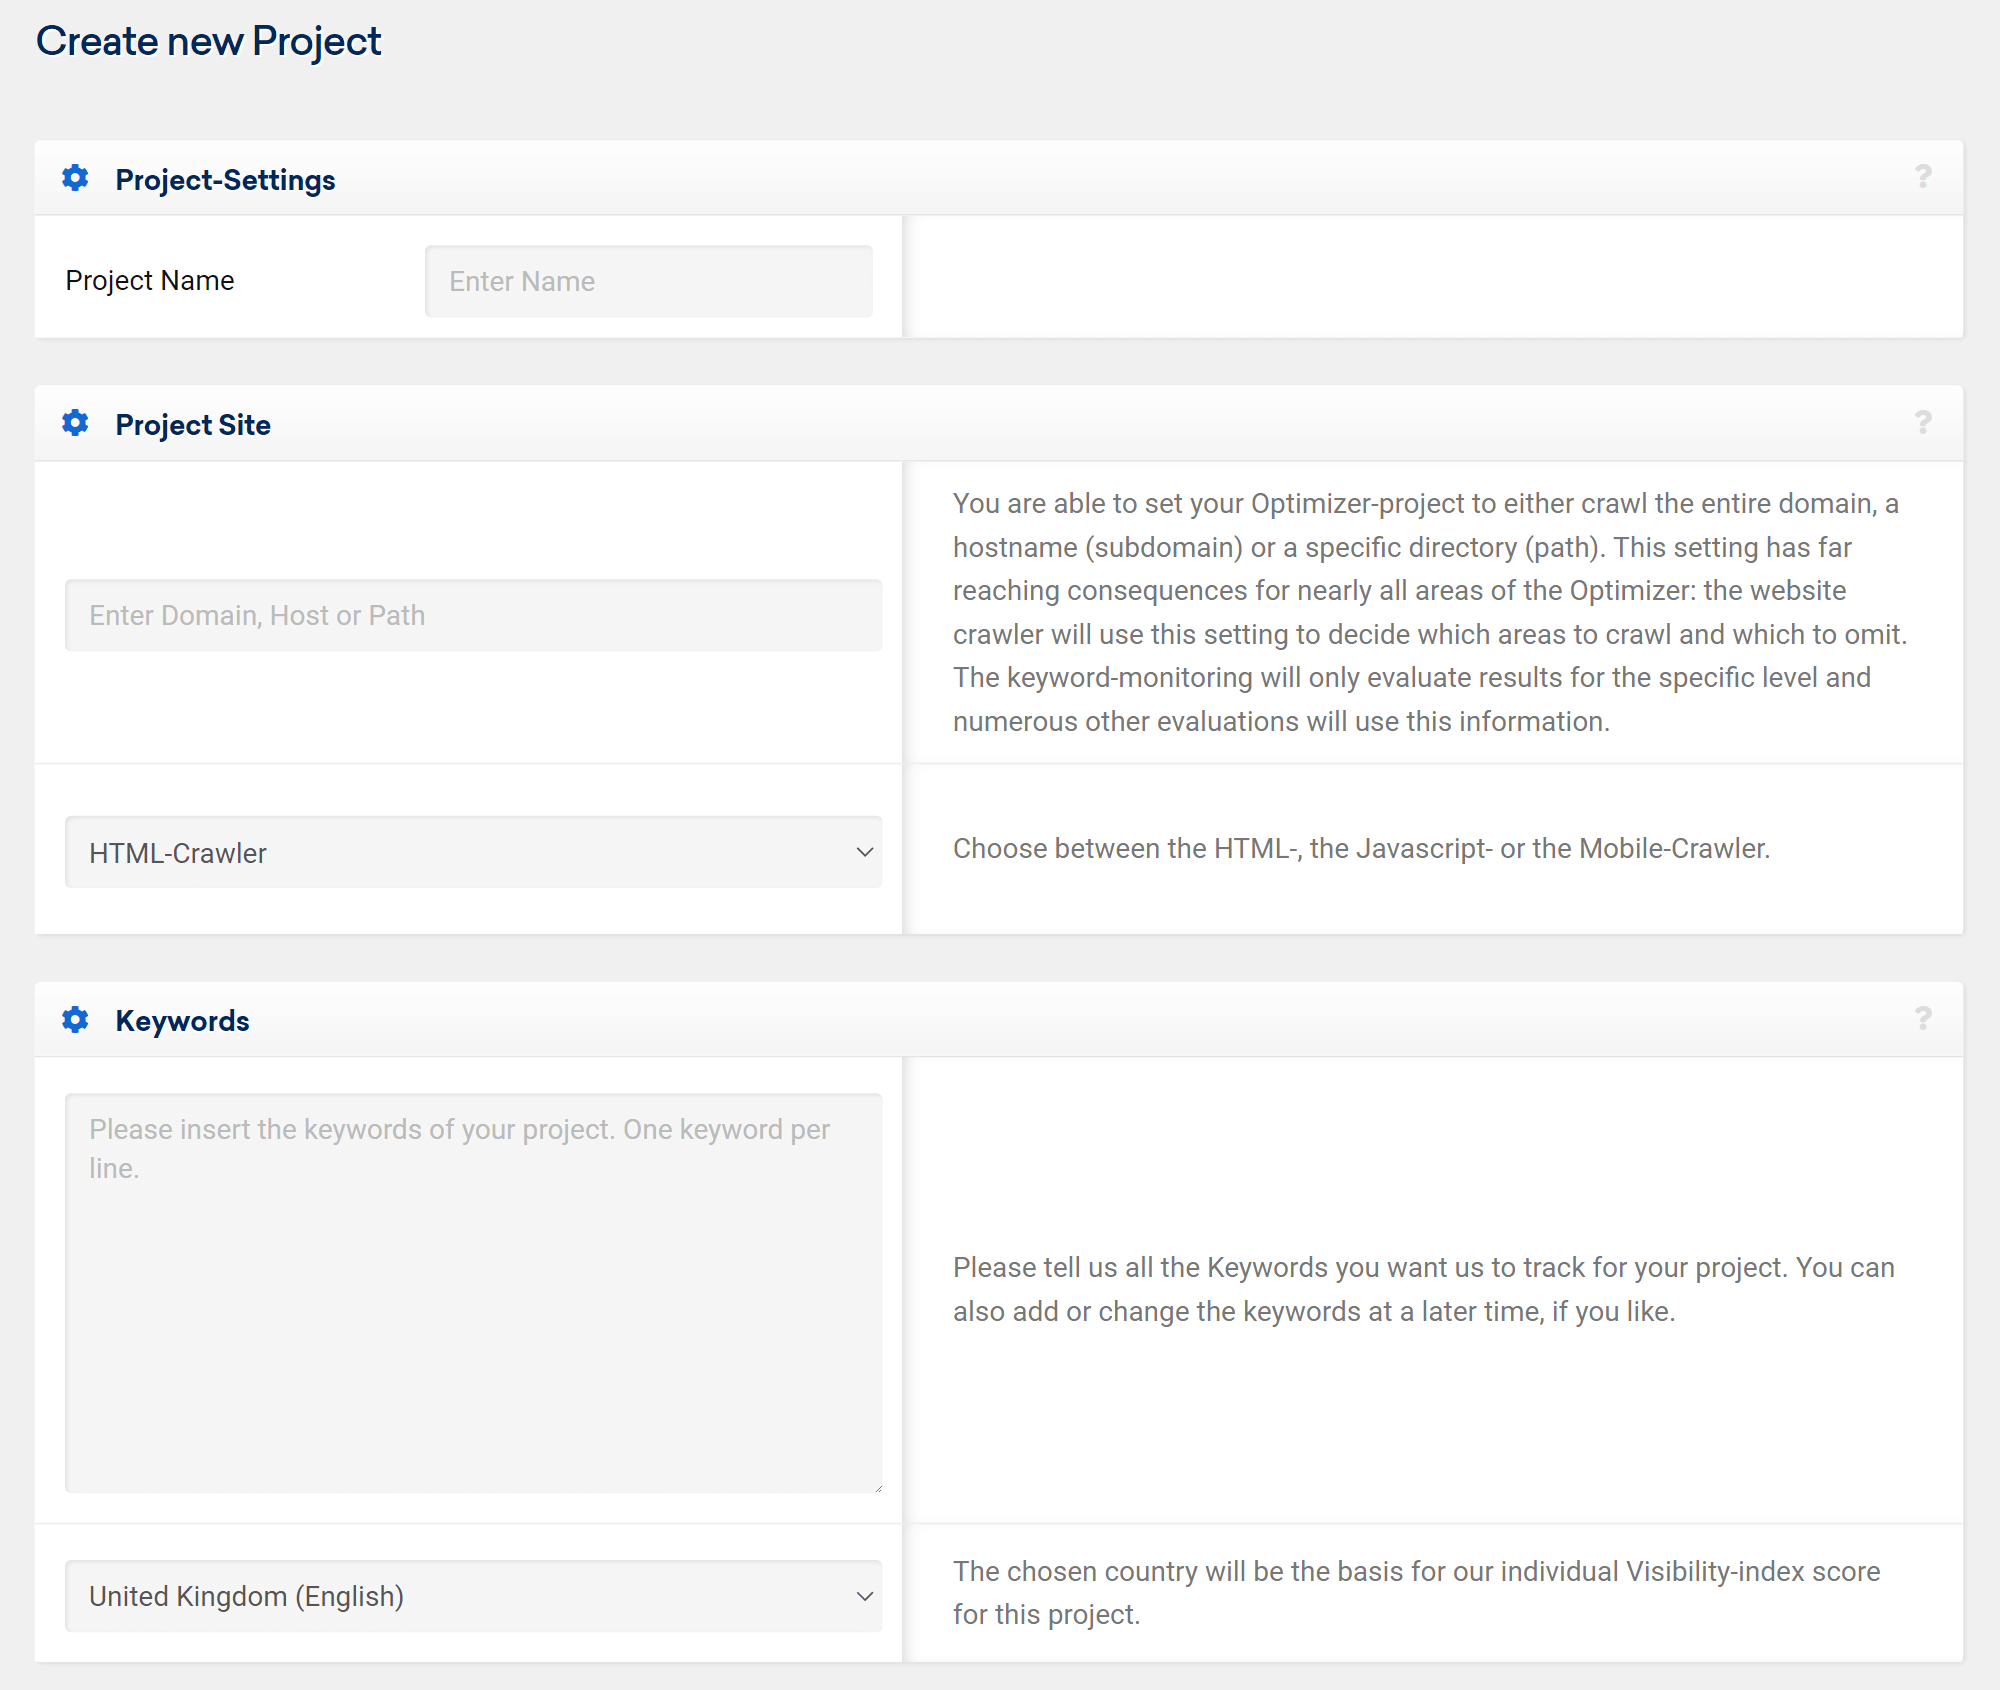 Create a new project in the Optimizer